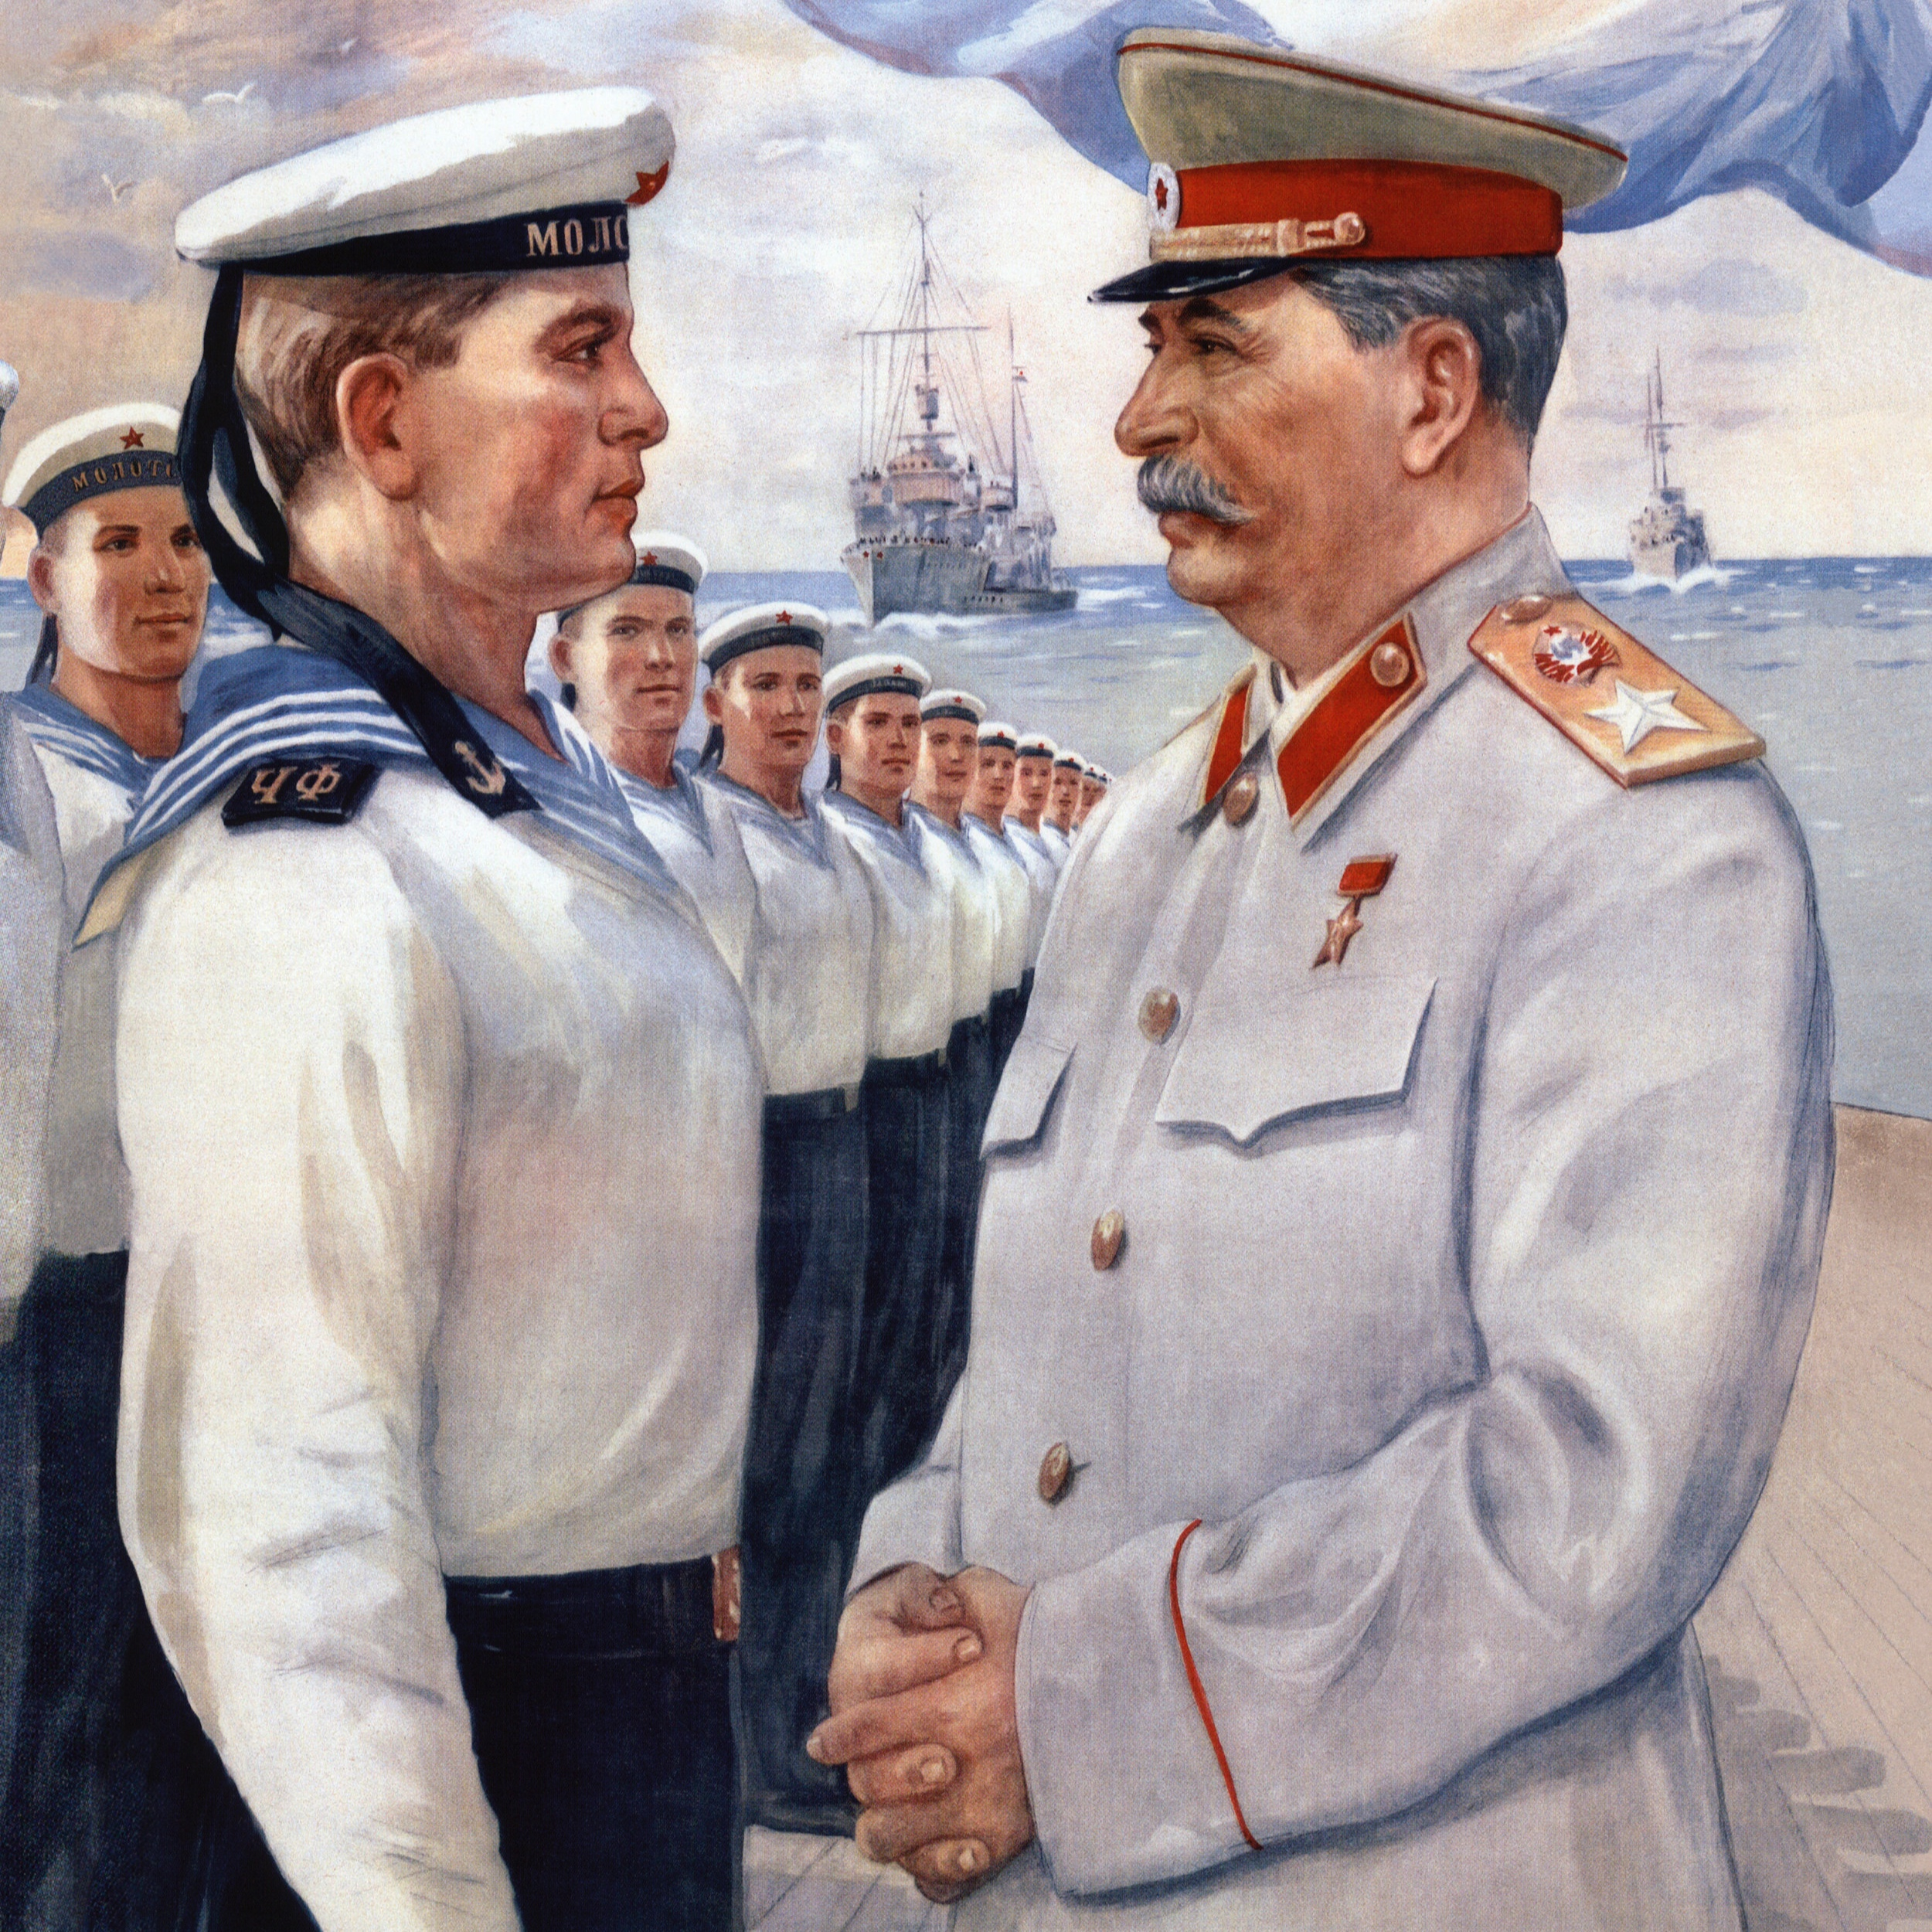 Stalin+with+navy.jpg